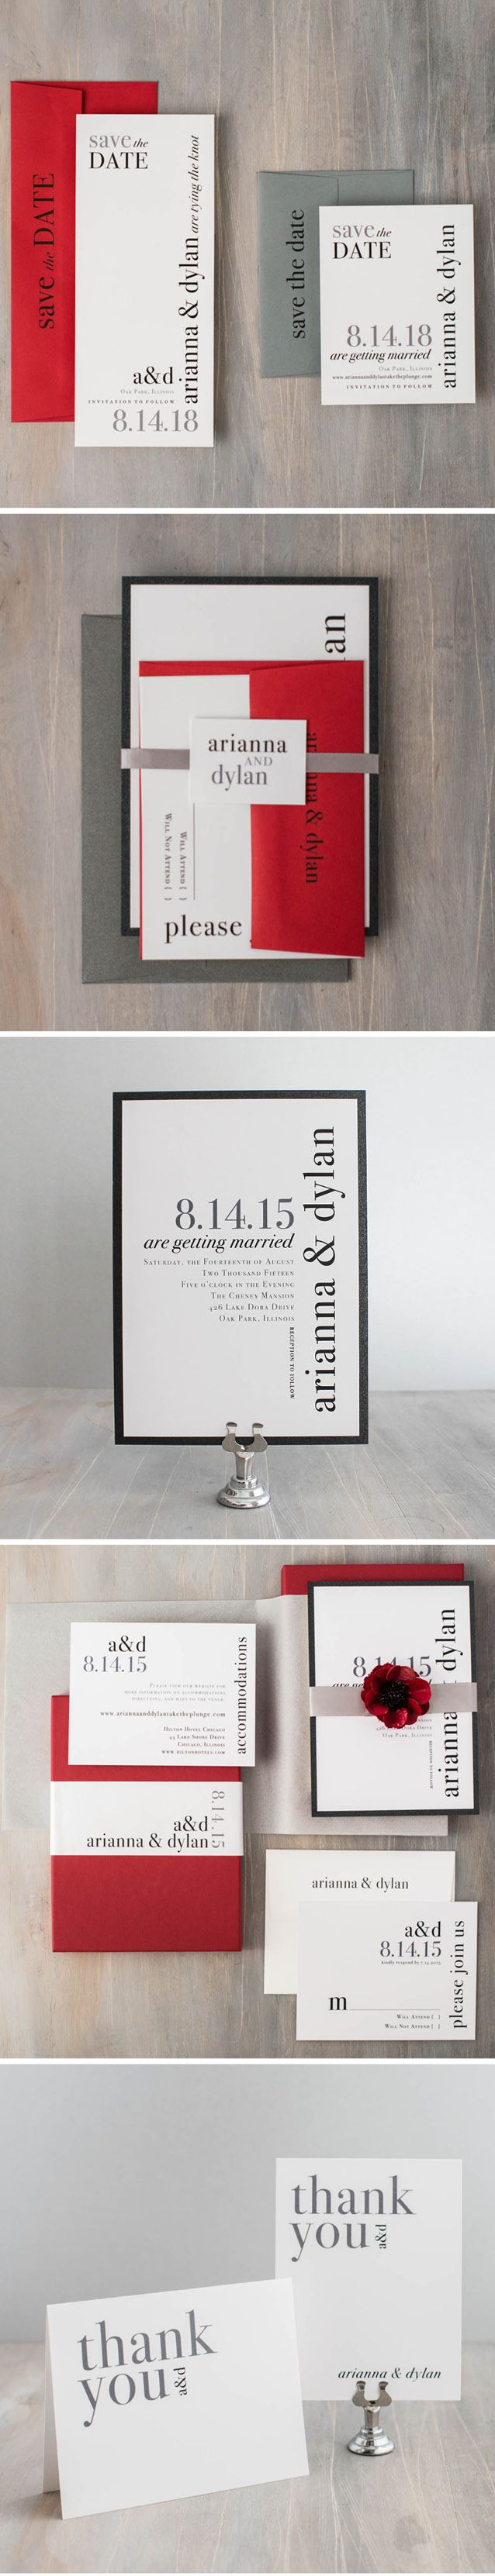 From wedding invites to ceremony programs set the tone for your modern wedding with Urban Elegance. Simple, classic, and elegant. Explore more from the collection at: www.beaconln.com or @beaconln